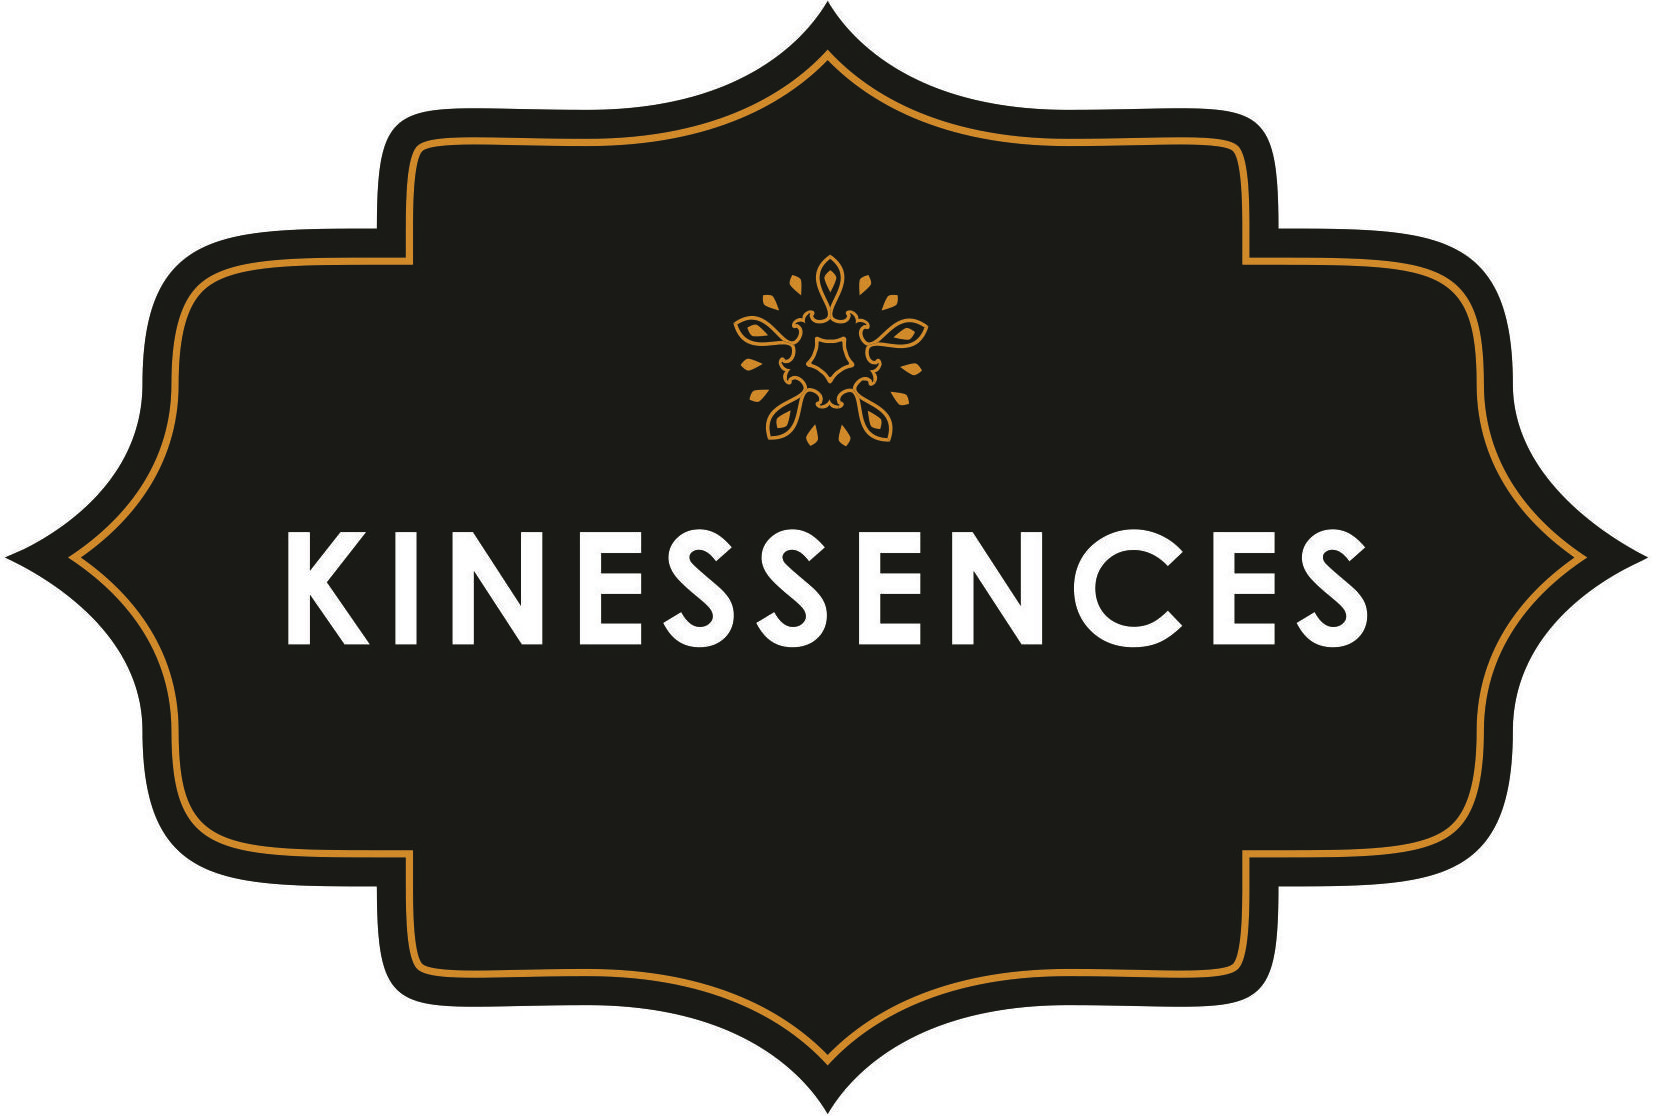 KINESSENCES OES: Productos  de Mathiss